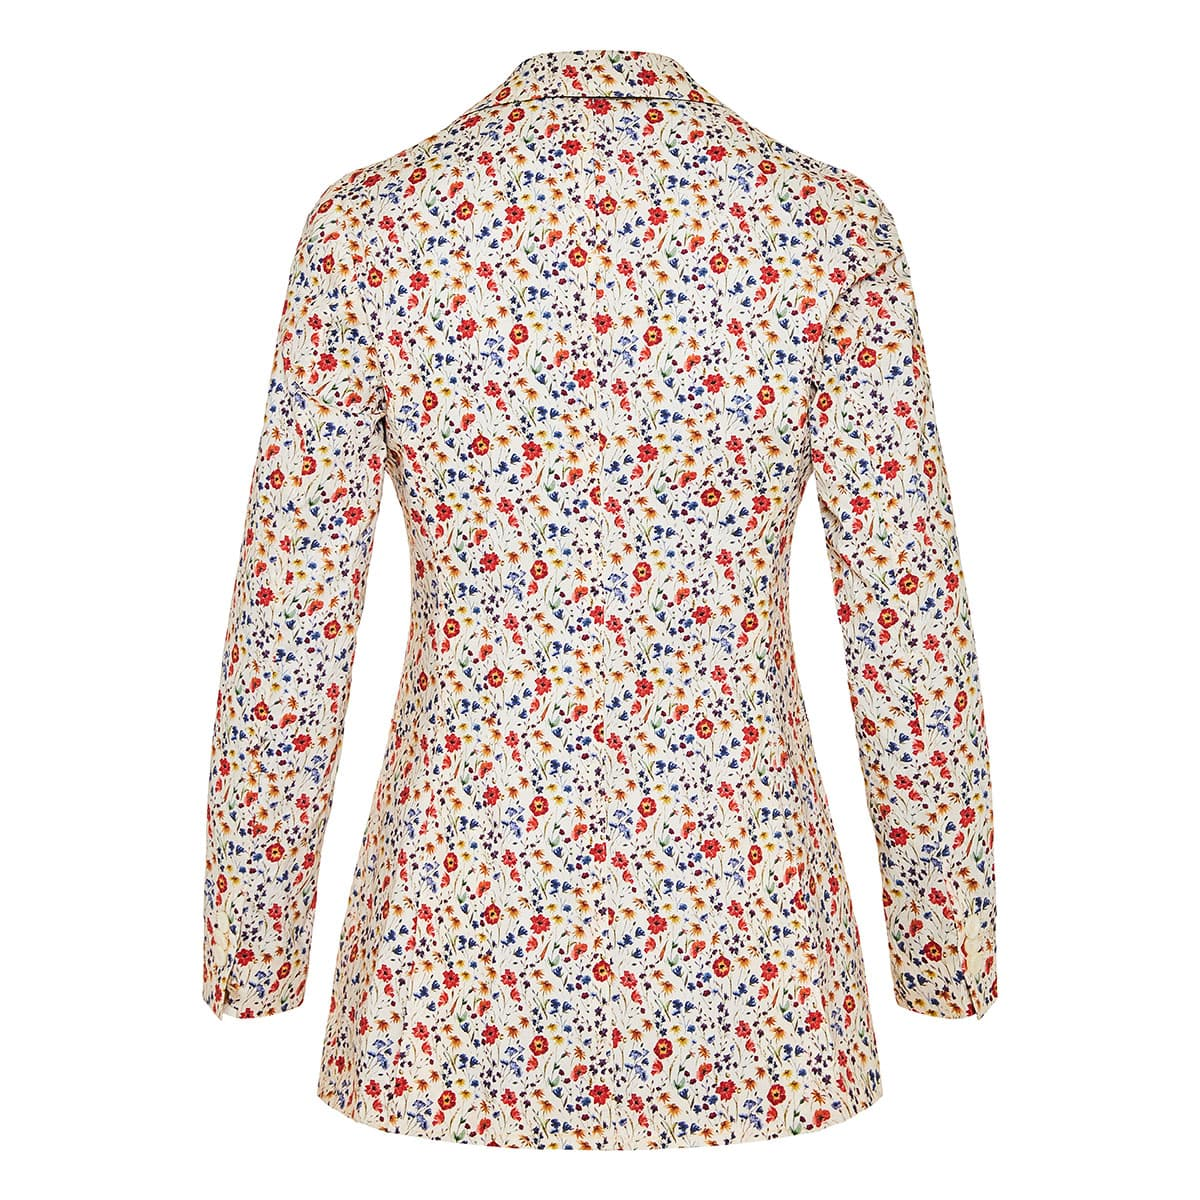 The Stella double-breasted floral blazer